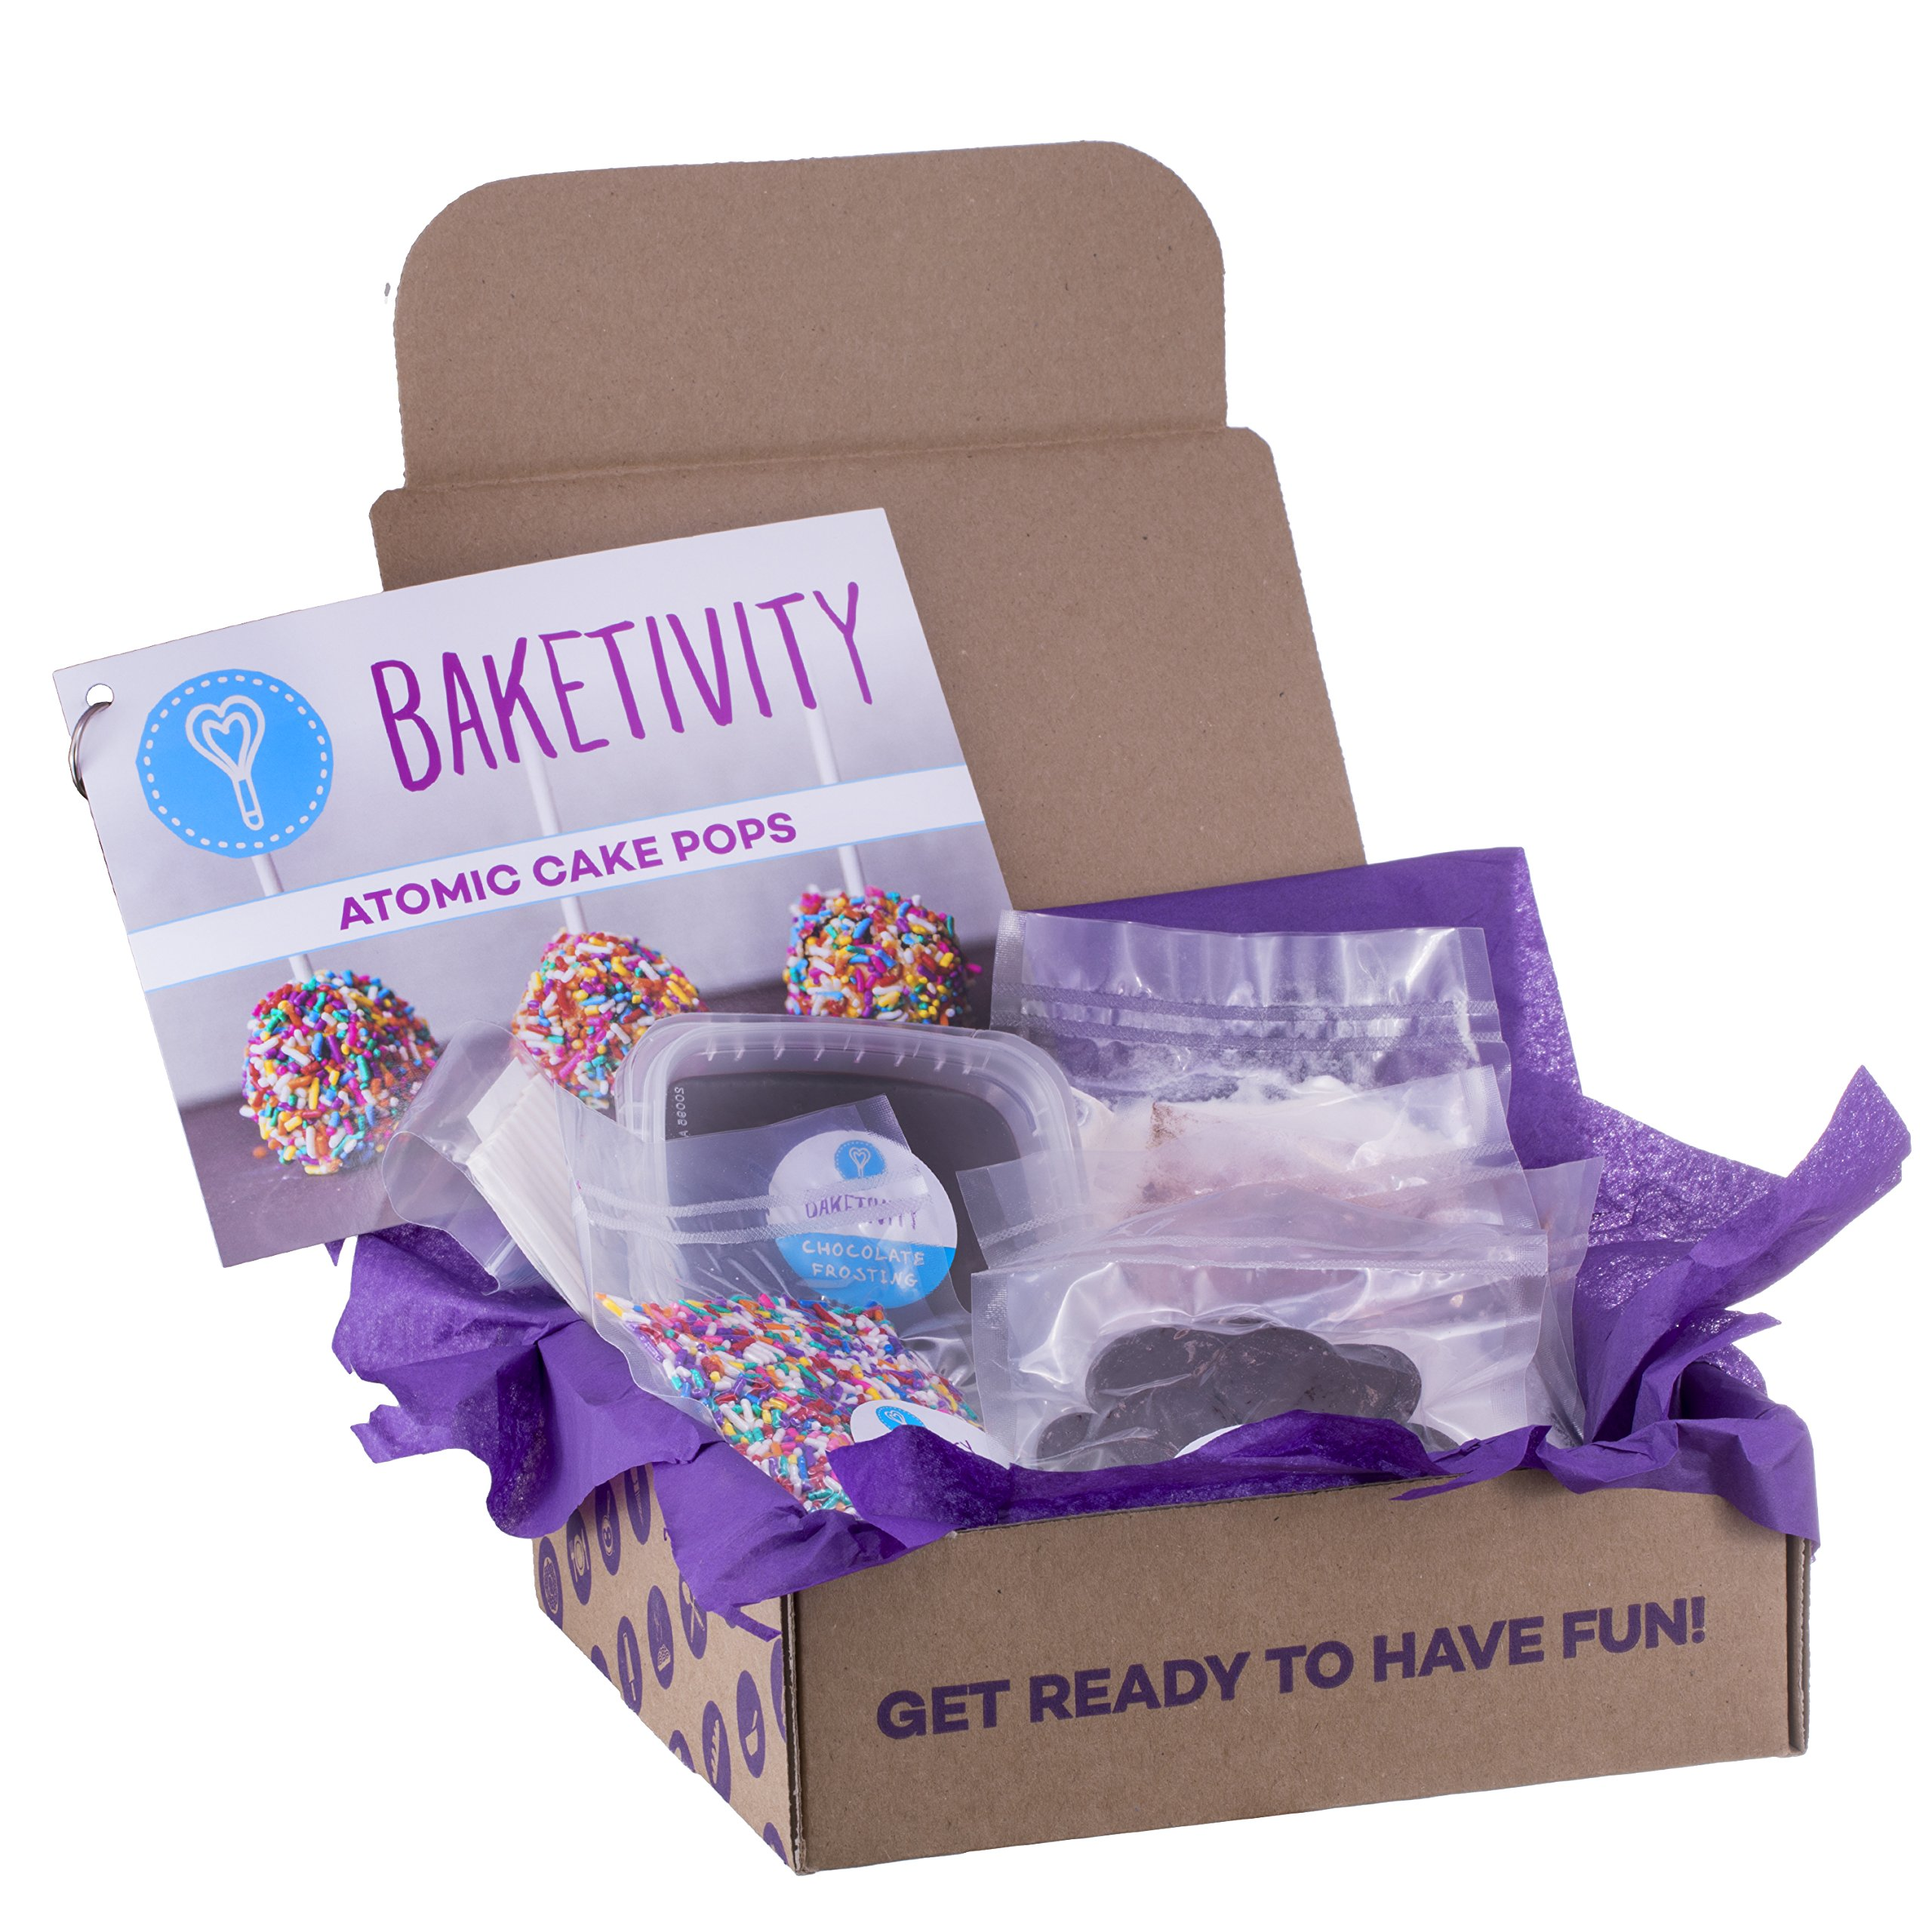 Baketivity Kids Baking Set, Meal Cooking Party Supply Kit for Teens, Real Fun Little Junior Chef Essential Kitchen Lessons, Includes Pre-Measured Ingredients, Delicious Cake Pops